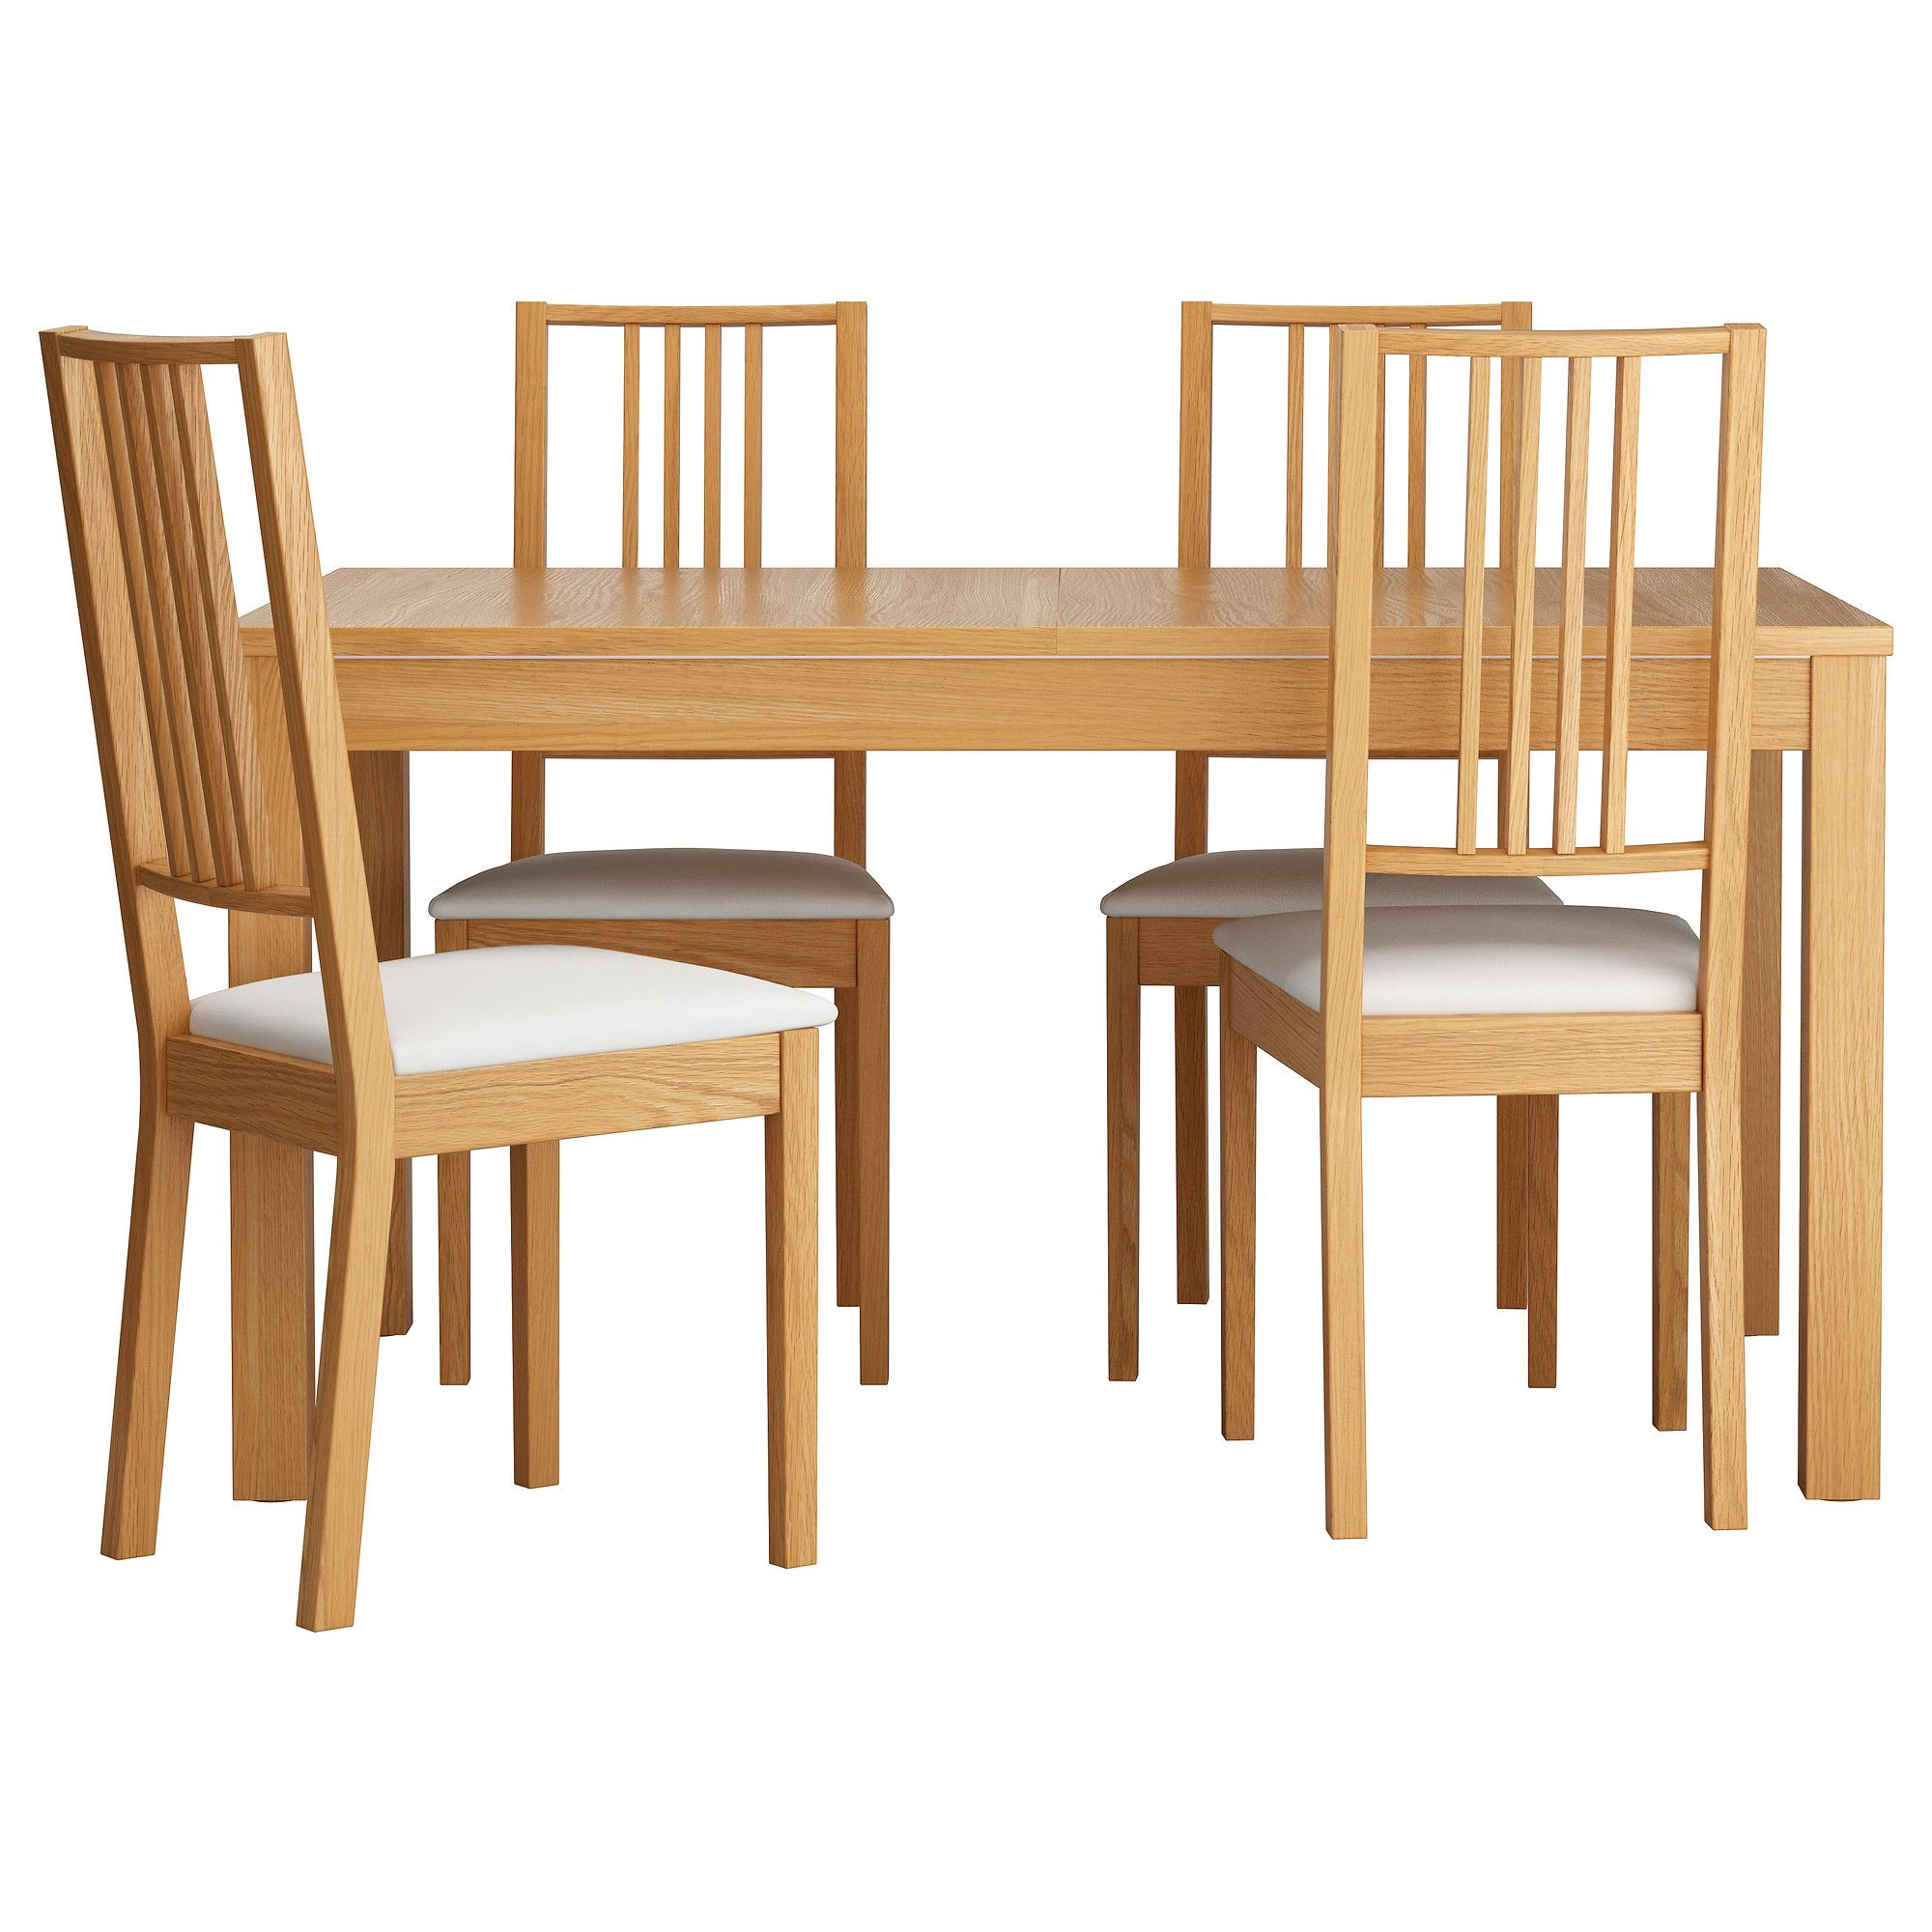 IKEA BJURSTA BORJE Table And 4 Chairs Oak Veneer Gobo White 140 Cm Extendable Dining With 2 Extra Leaves Seats Makes It Possible To Adjust The